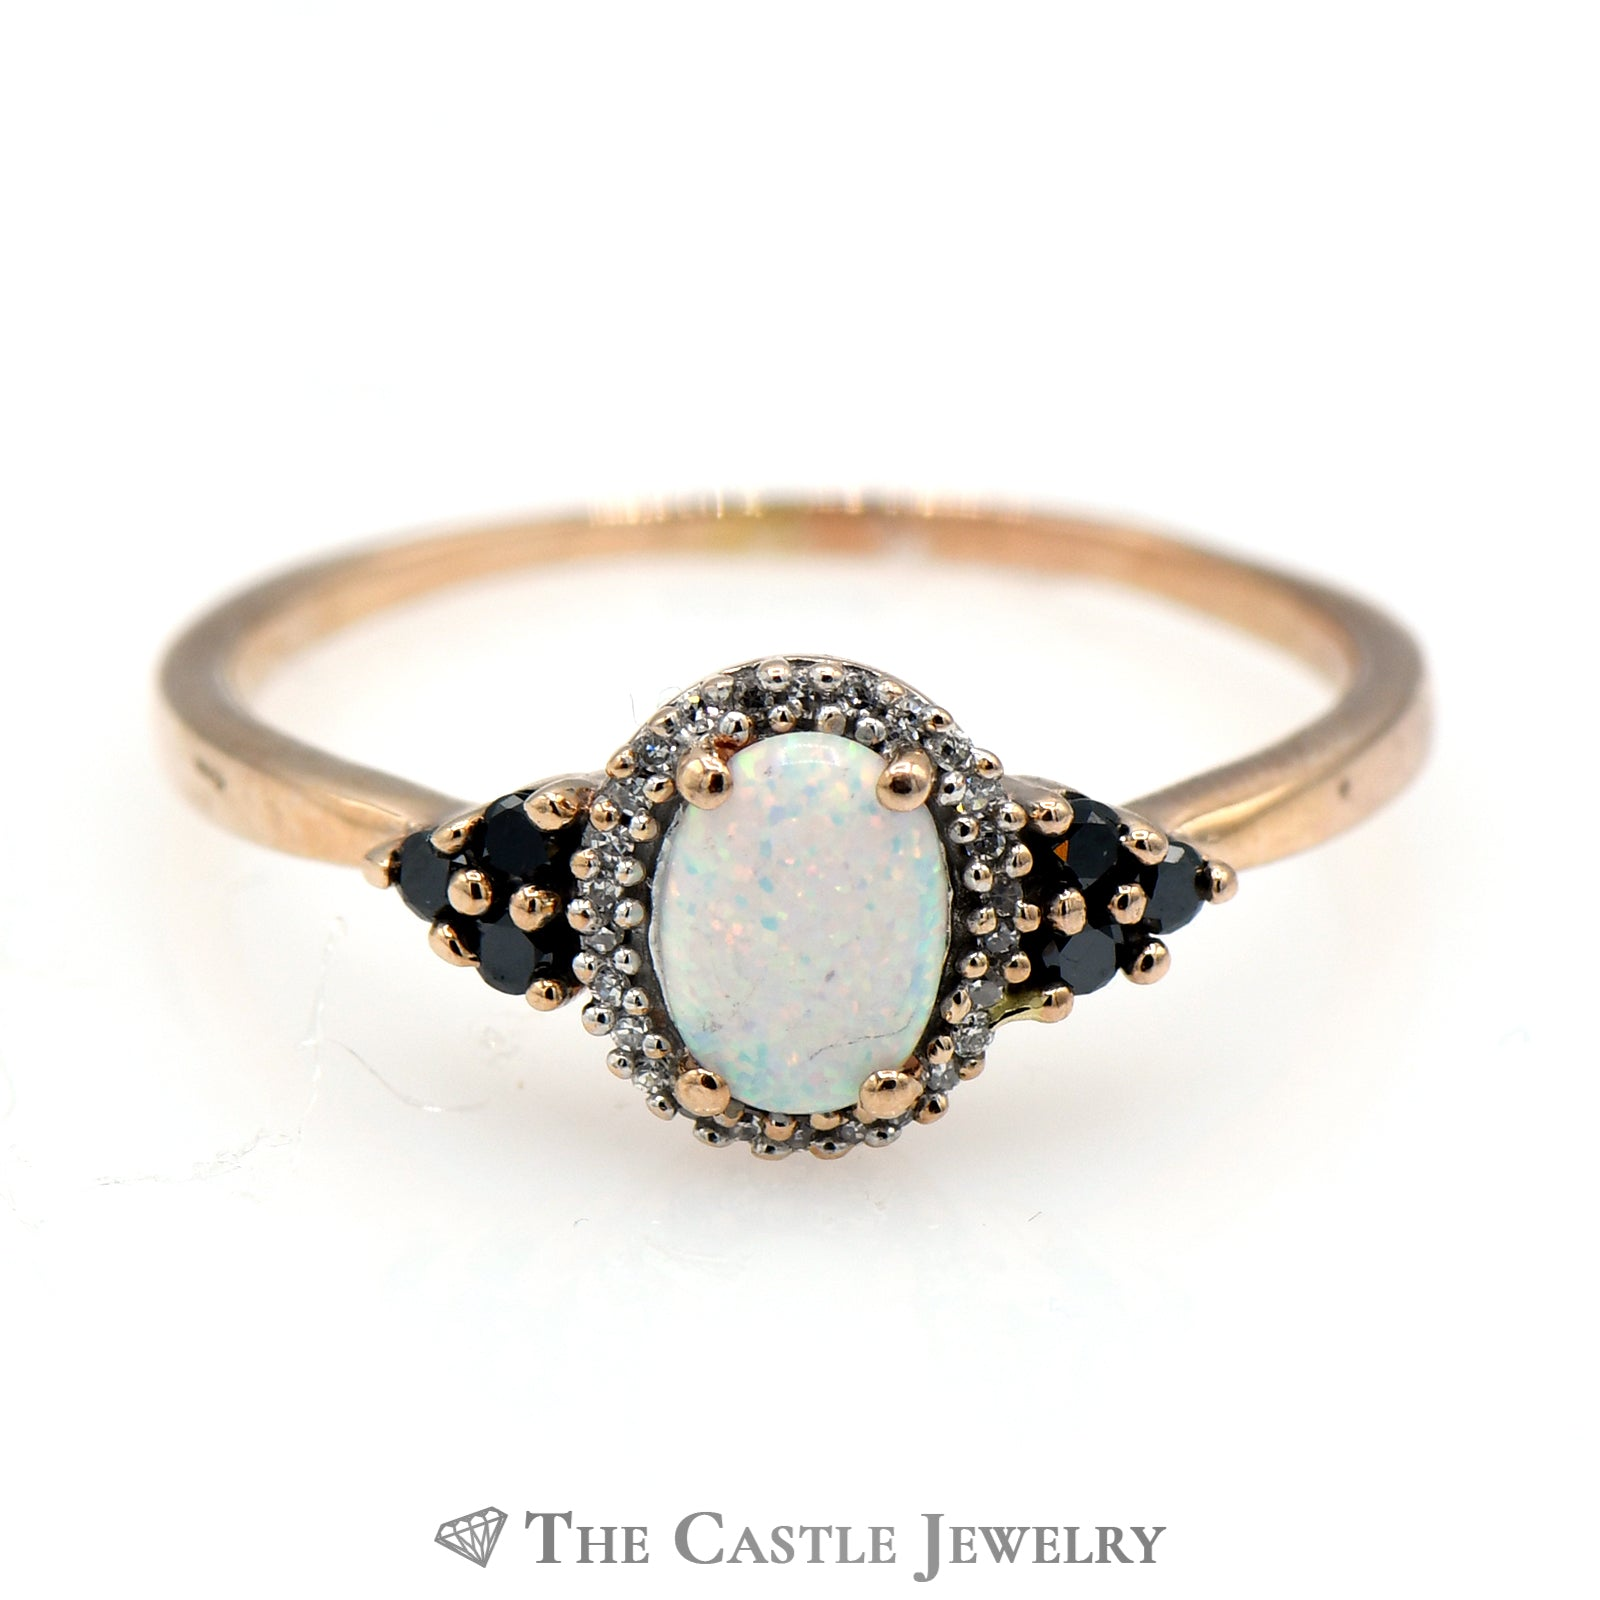 Oval Opal Ring with Black & White Diamond Accents